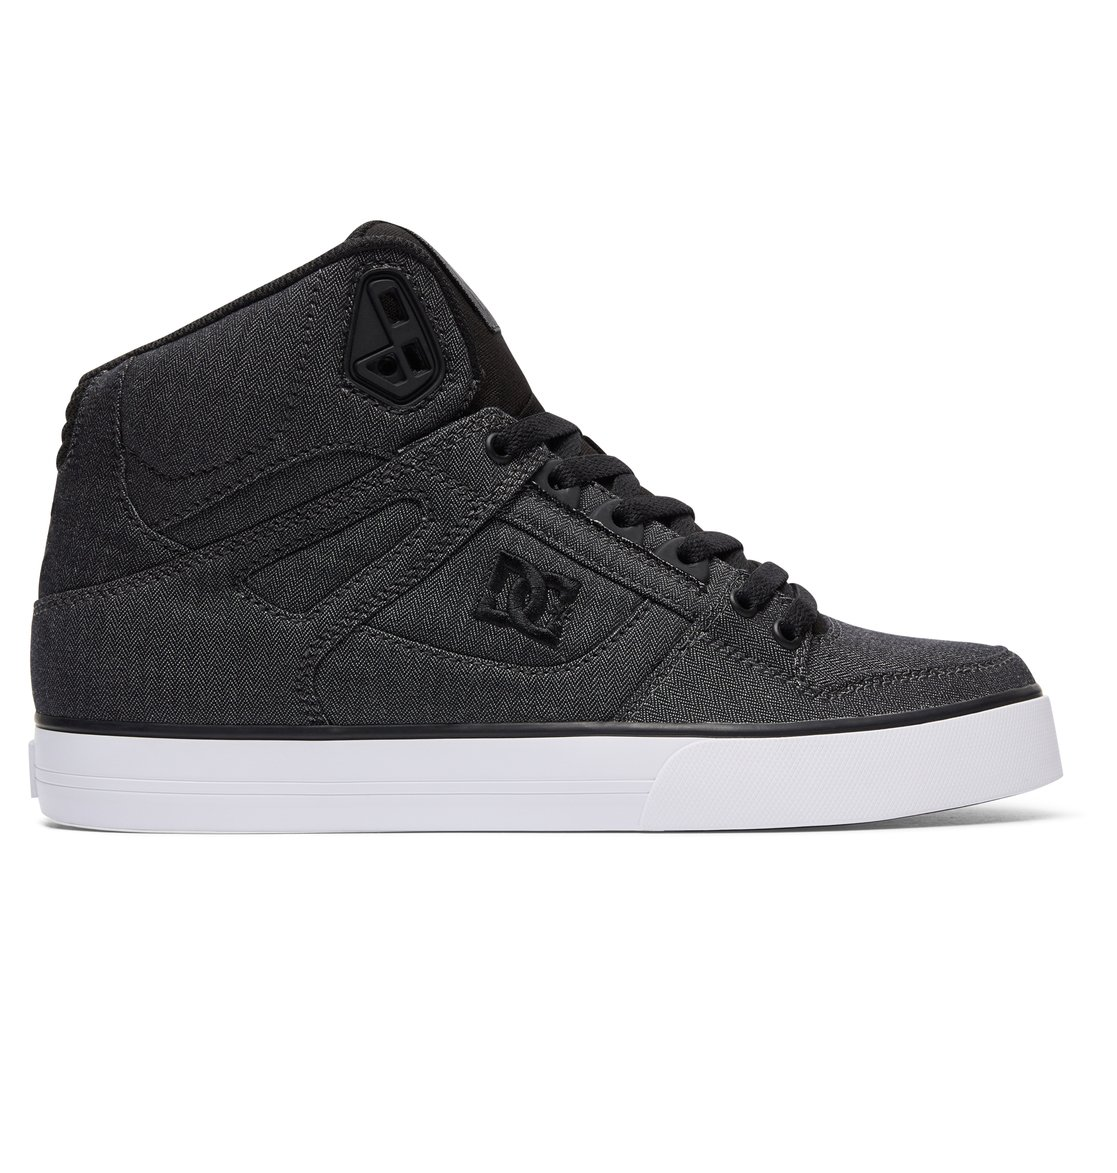 DC SHOES Spartan High Chaussure Homme - Taille 43 - BEIGE